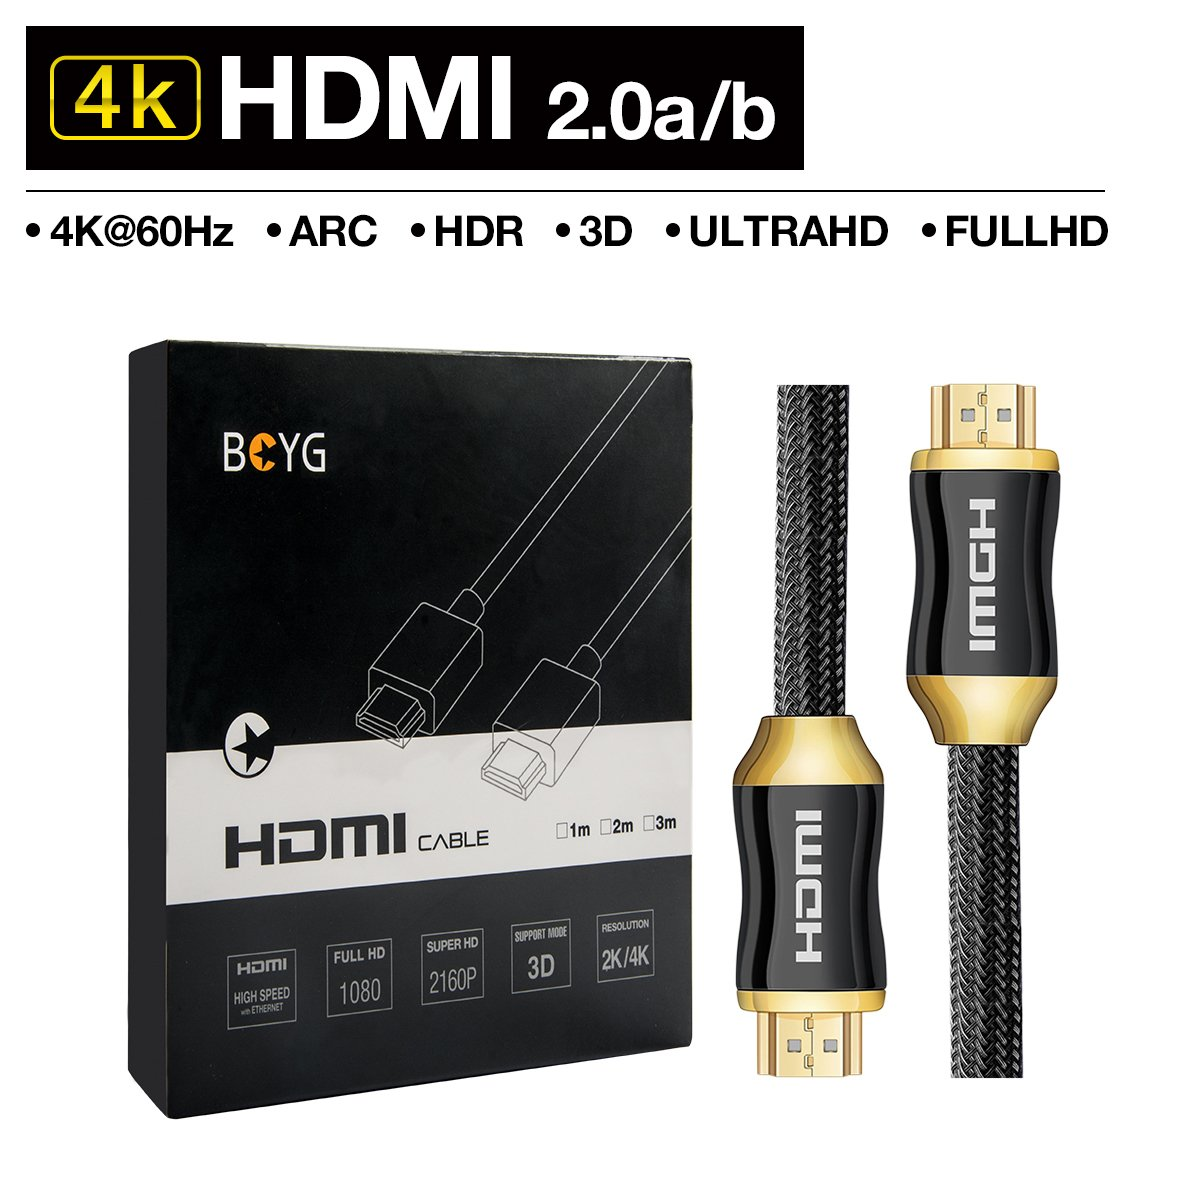 Premium 4K HDMI Cable 2M HighSpeed HDMI 2.0a / b Cable,Compatible con 4K Ultra HDTV 2160P,Full HD 1080P, HDR,3D,ARC,CEC,Ethernet,Blue-ray,Soporte para TV,PC,Laptop,PS3,PS4,Xbox,Wii